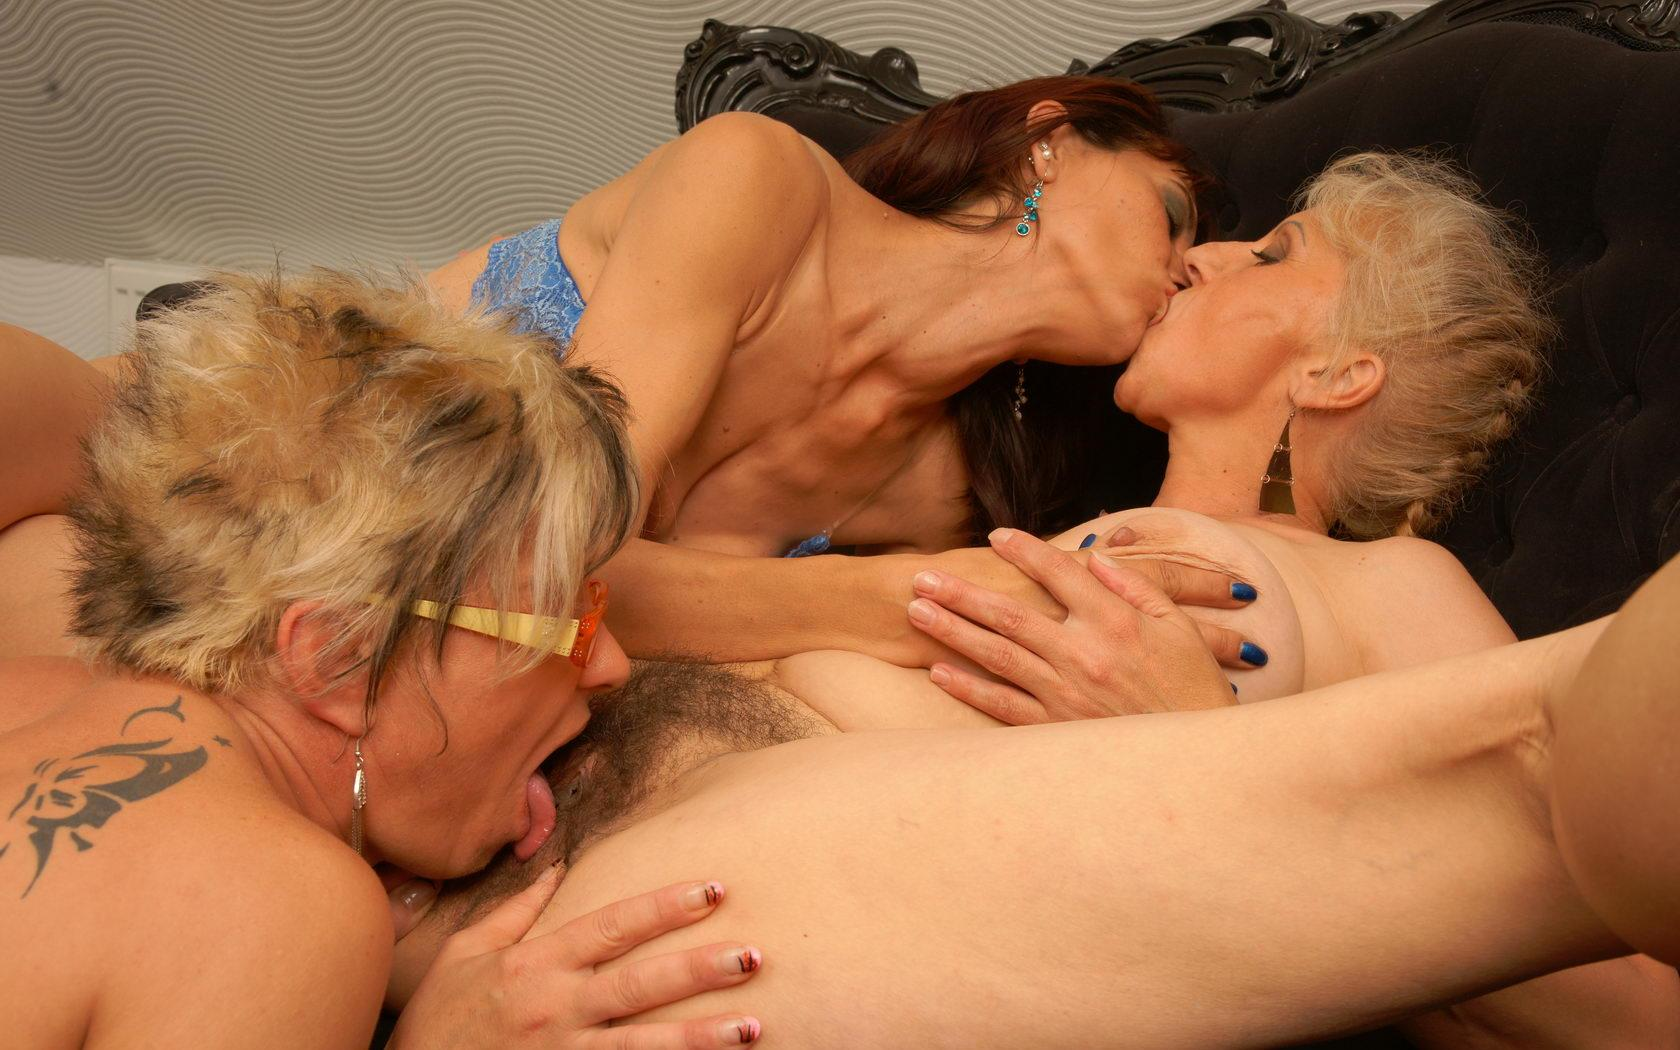 lustfull granny never refused a man licking a 70 years old and 18 years old pussy here